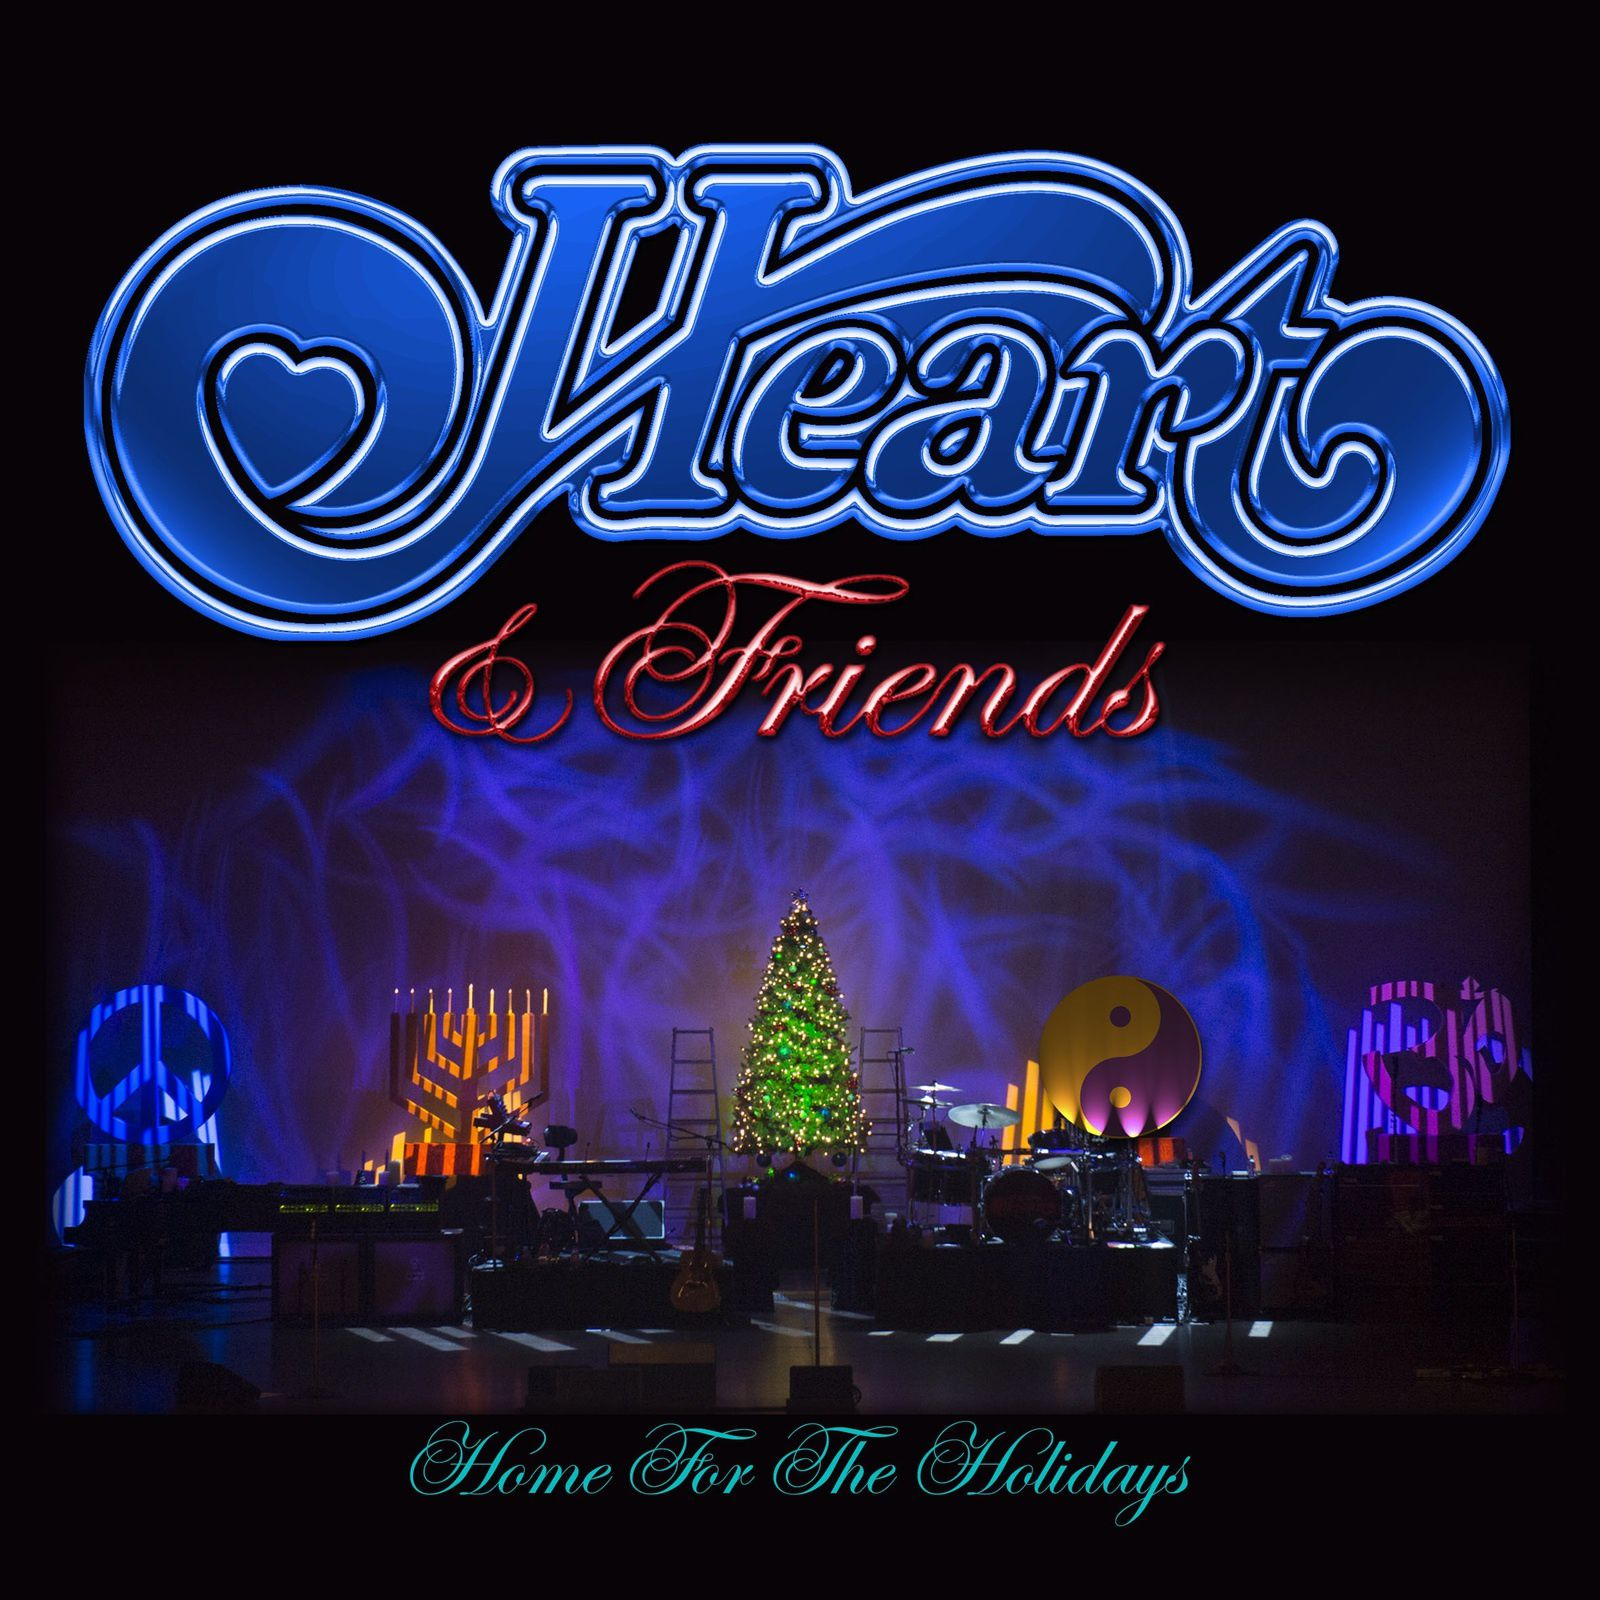 """CD review HEART """"Heart & friend: Home for the holidays"""""""